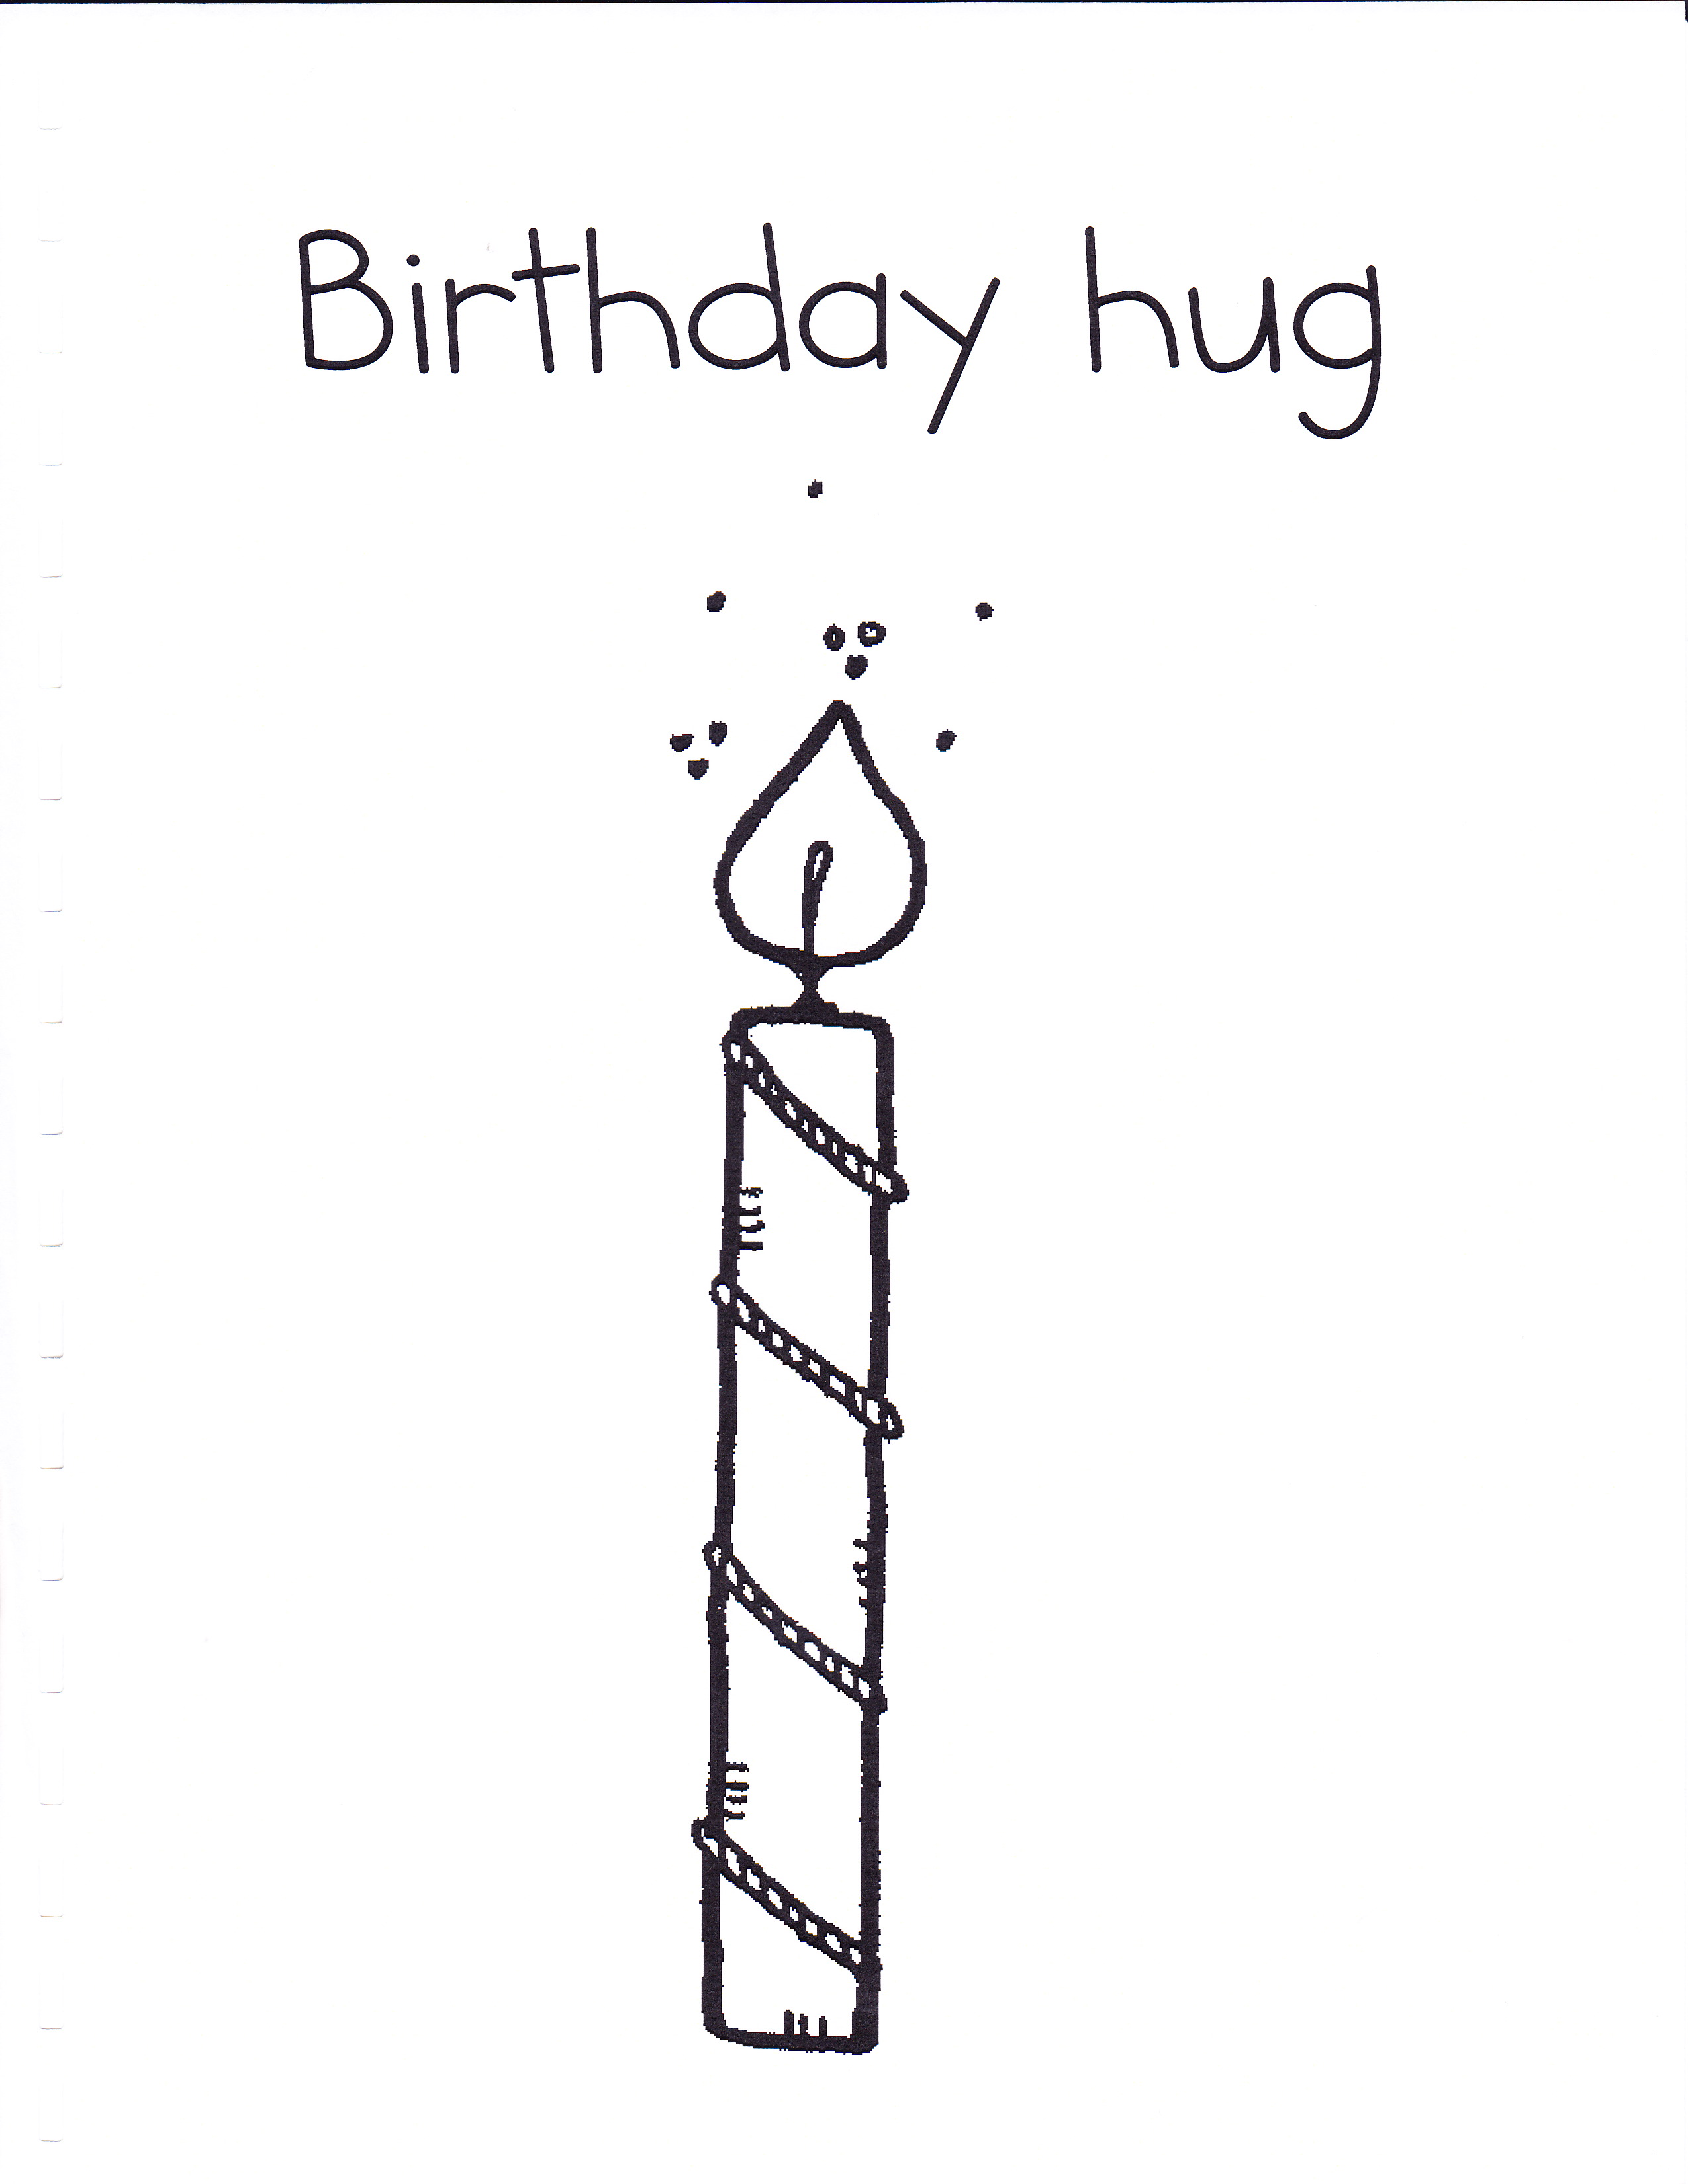 Drawn candle birthday candle #14